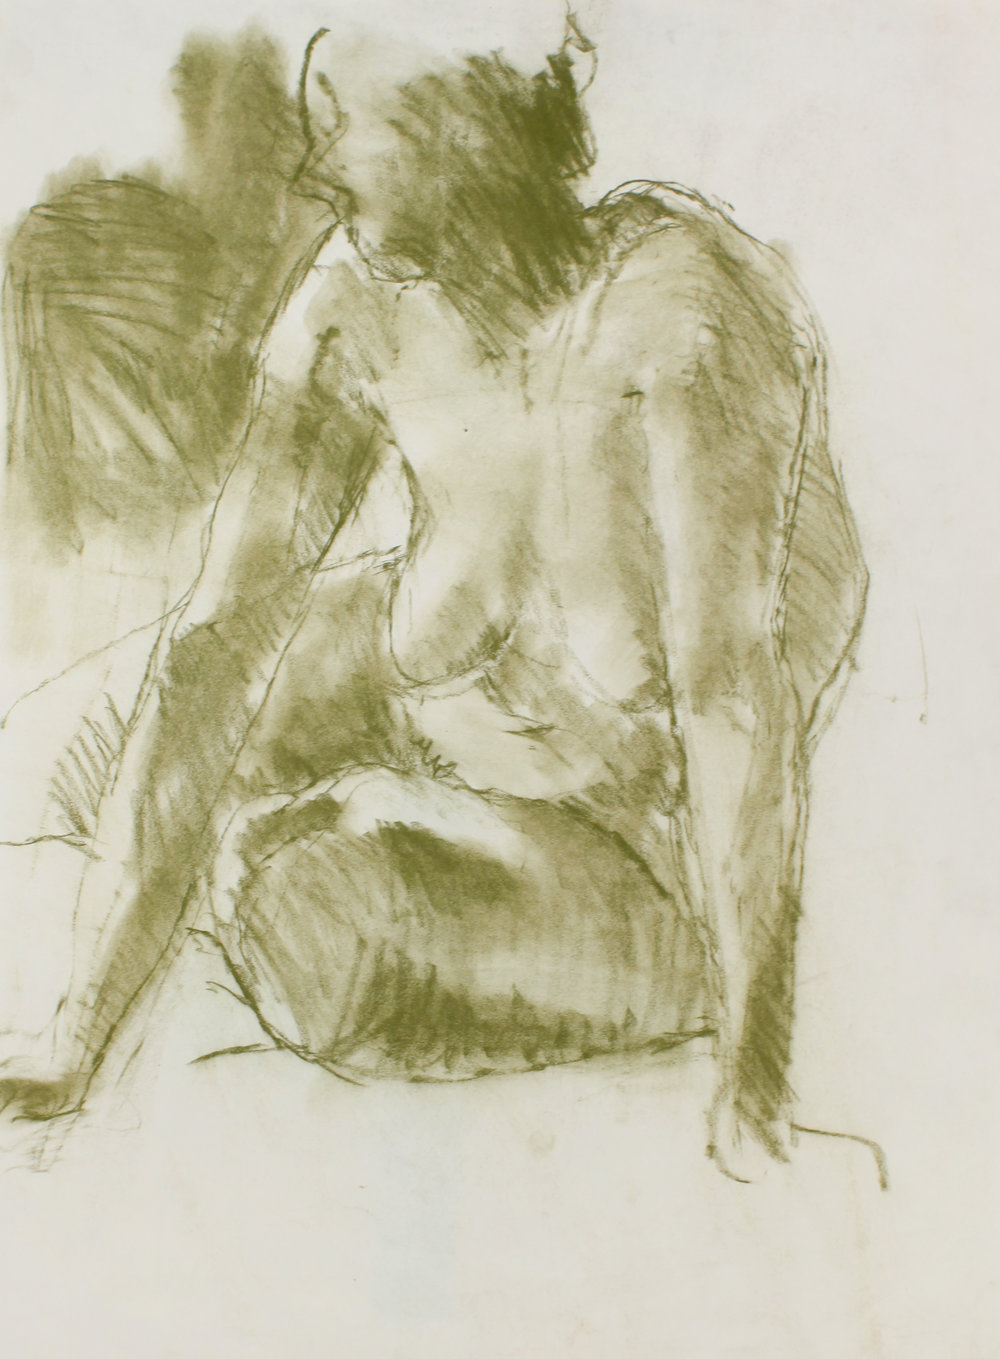 1990s_Seated_Nude_with_Splayed_Arms_green_pastel_on_cream_paper_26x19in_WPF464.jpg